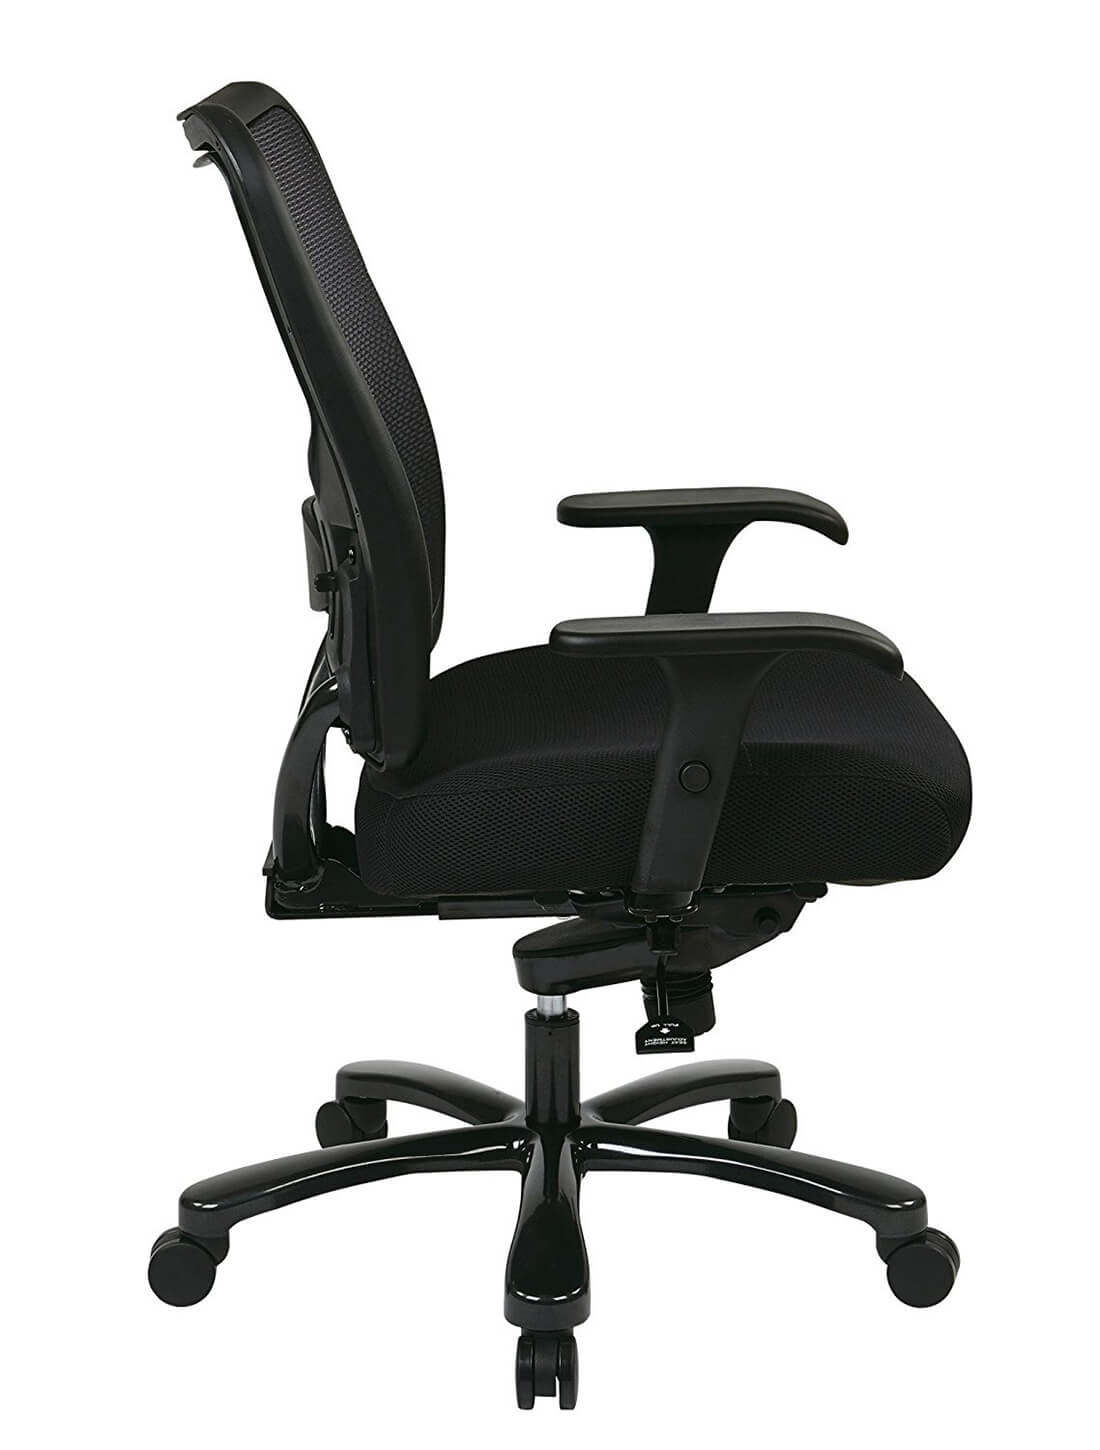 Office Chair For Tall Person 14 New And Best Office Chairs In 2018 Under 100 200